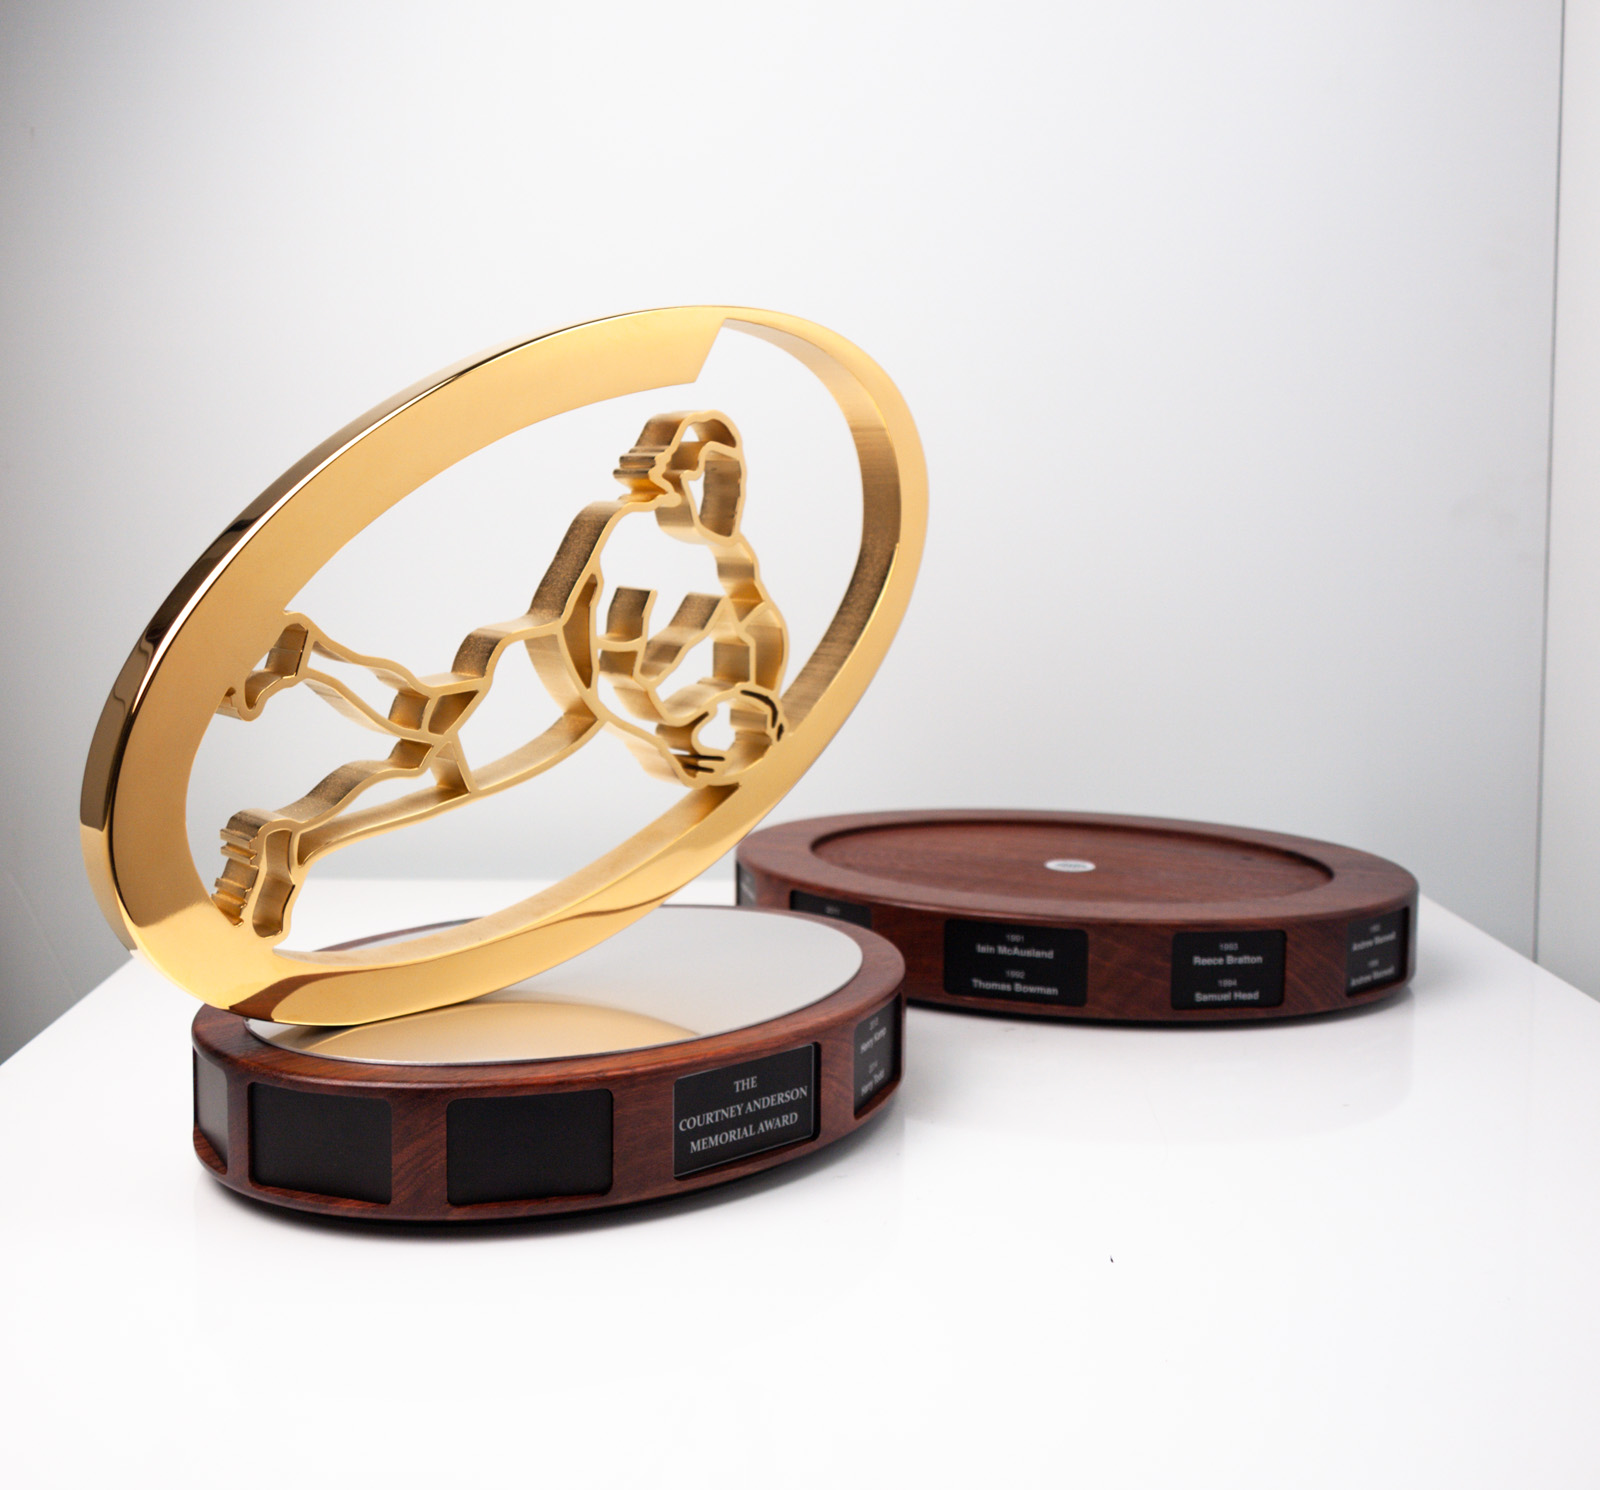 The Courtney Anderson Memorial Award Scots College Perpetual Football Award Trophy